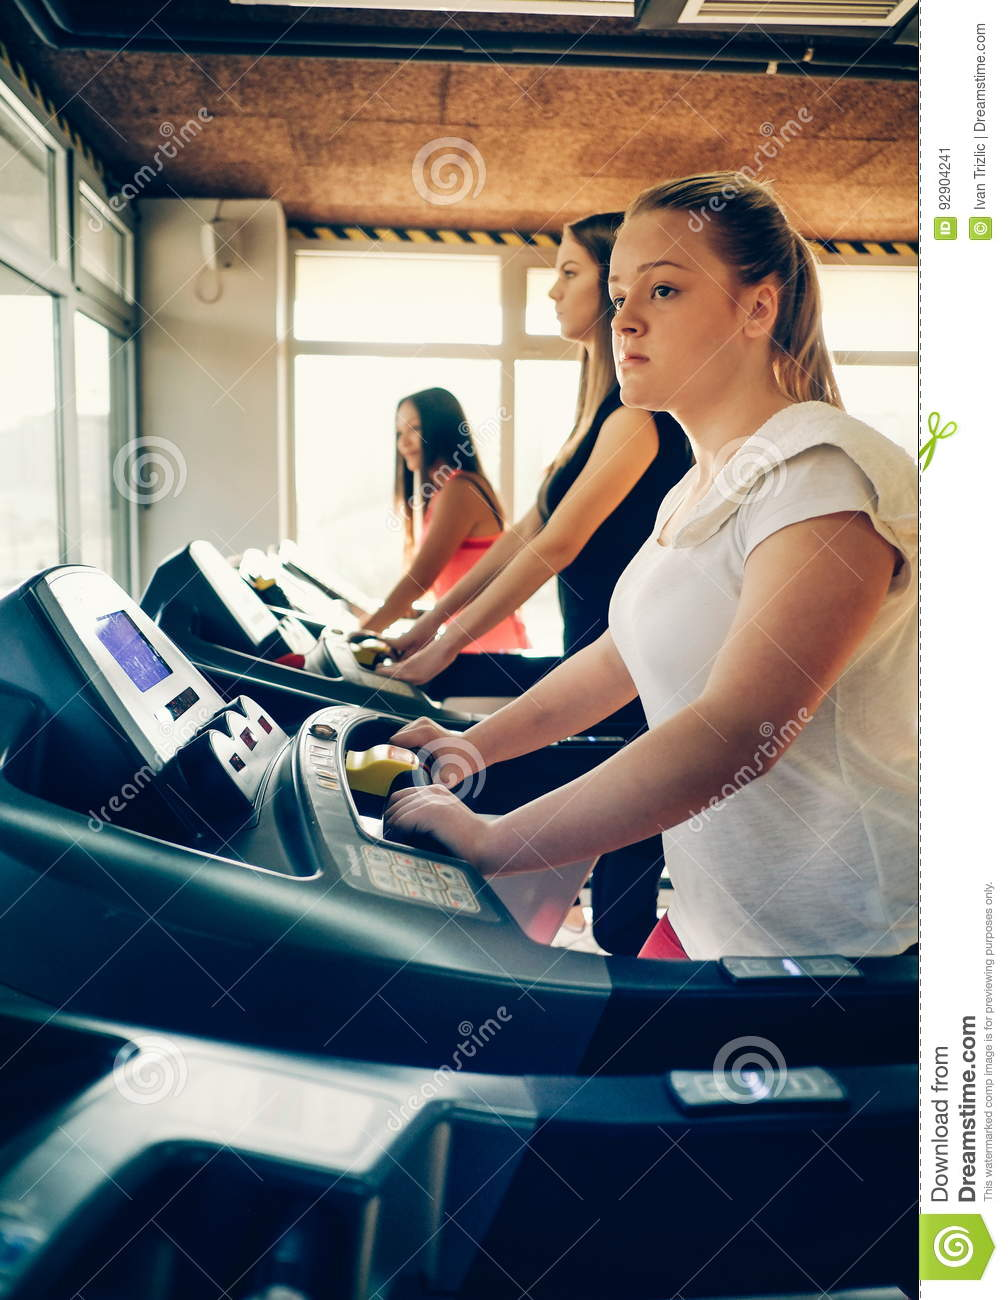 Fitness girl burning calories on the treadmill. Beautiful young cheerful girl in sportswear exercising on treadmill at gym.